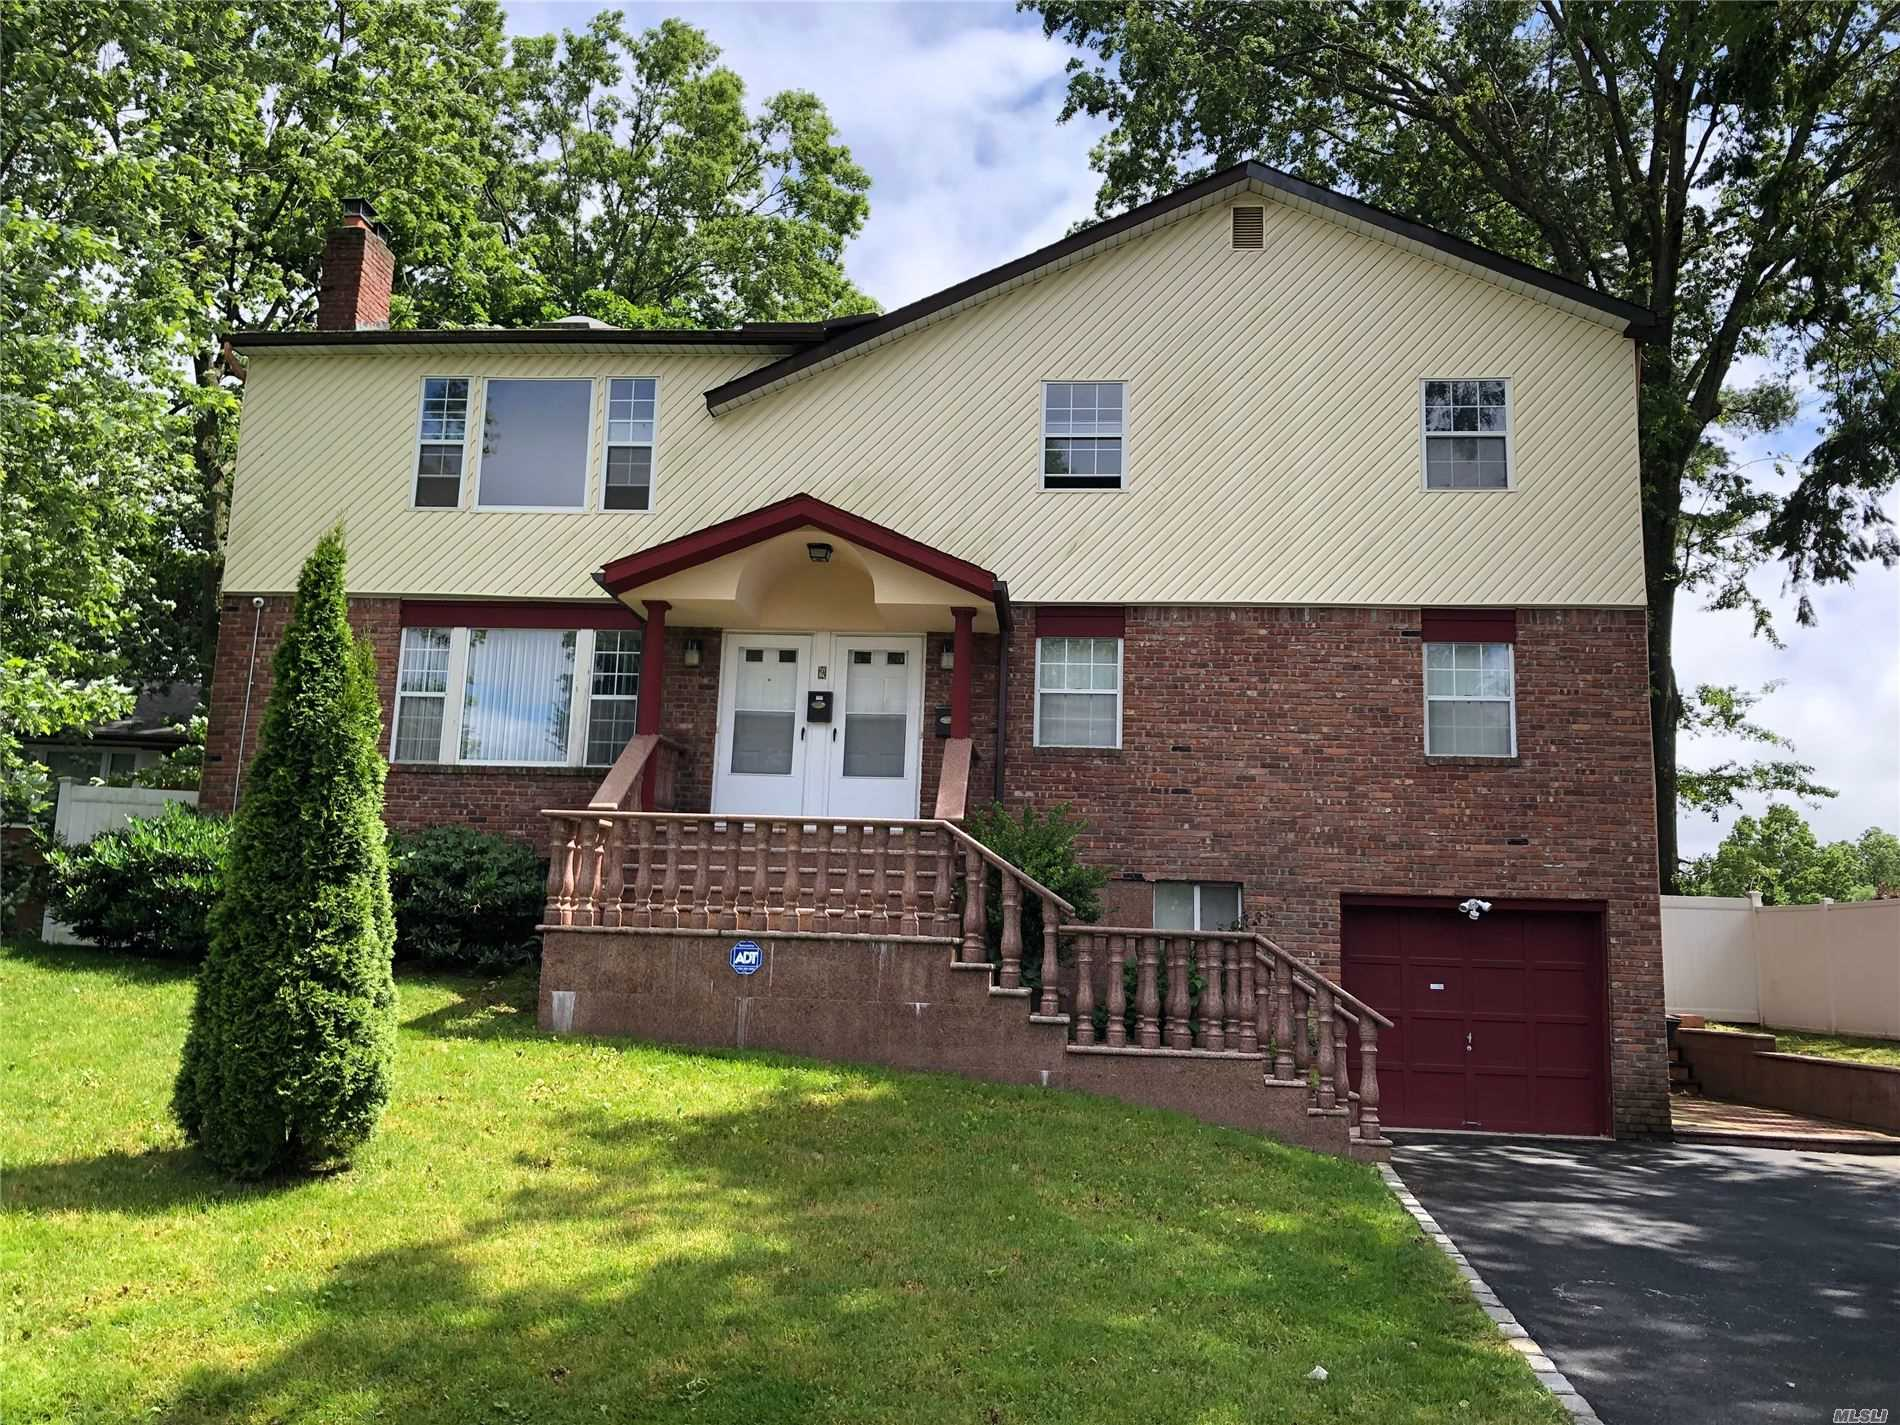 Spacious 3 Bedroom, 2 Bath Apartment On 2nd Floor. Large Living Room W/ Wood Burning Fireplace, High Ceiling, Dining Room, Balcony, Eat-In Kitchen, Master Bedroom, BR W/ Full Bath And Walk-In Closet. 2 Additional Bedrooms And Full Bath. Laundry.